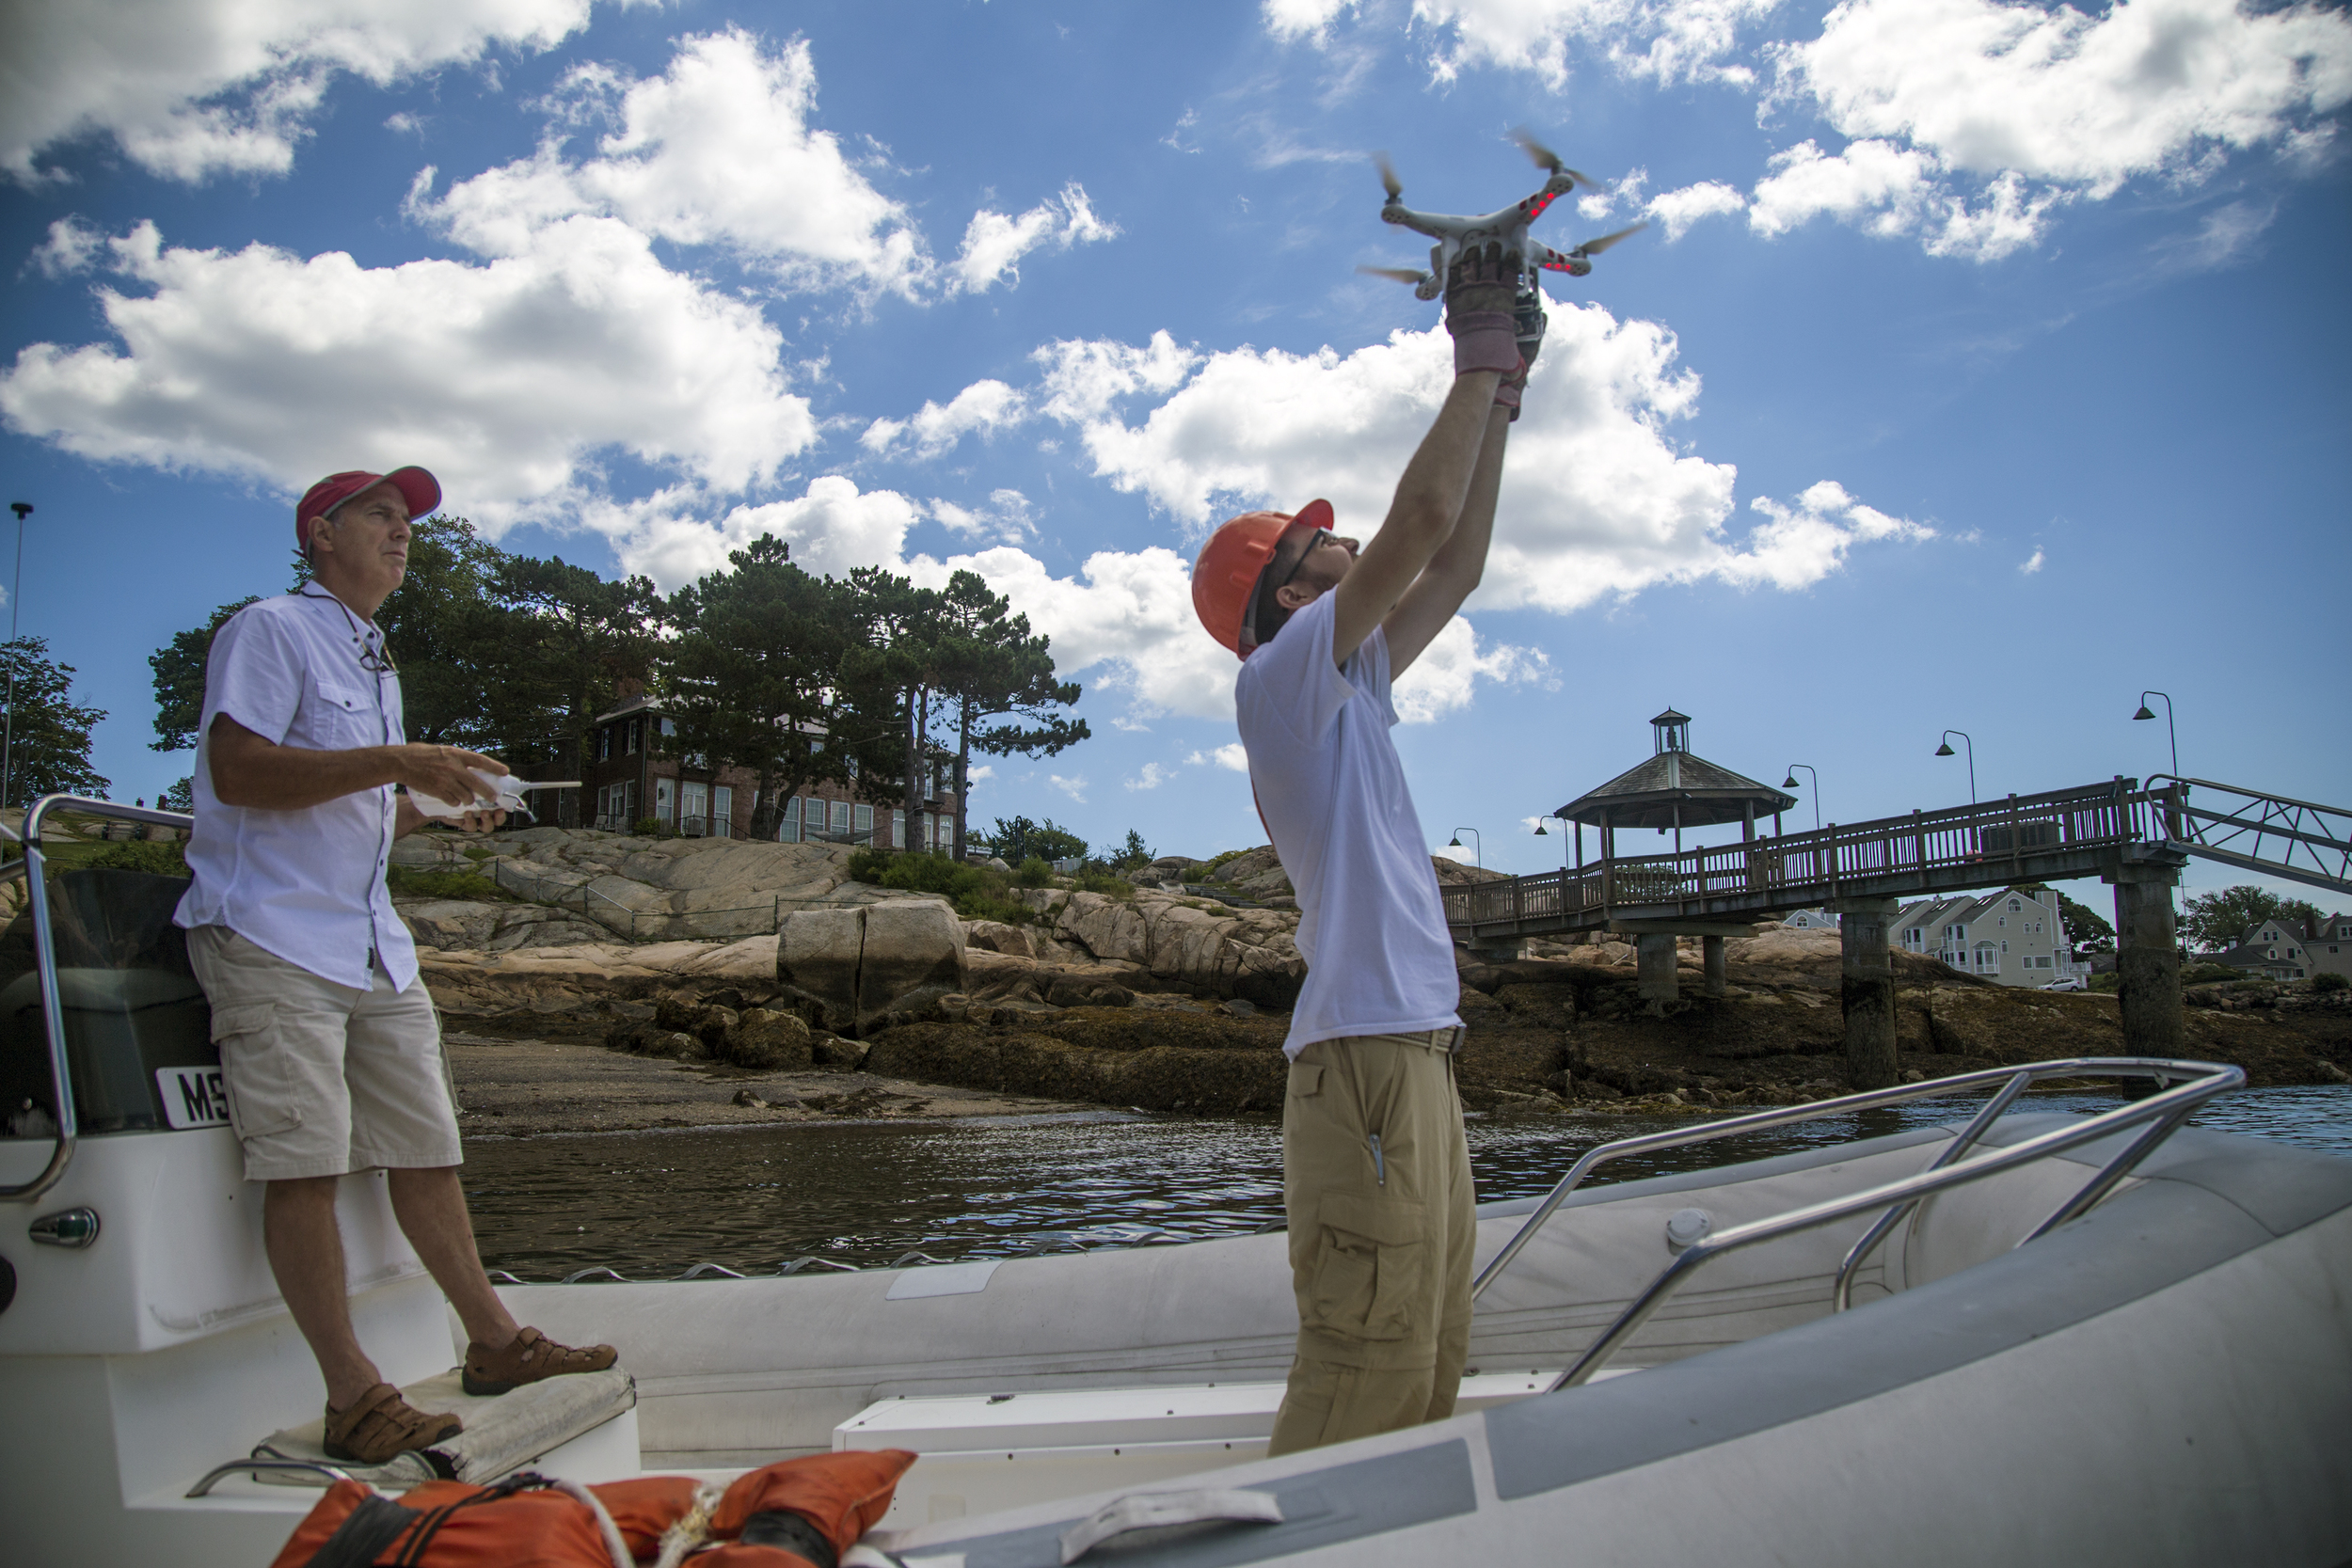 Saving the oceans, one snot-drone at a time in Gloucester